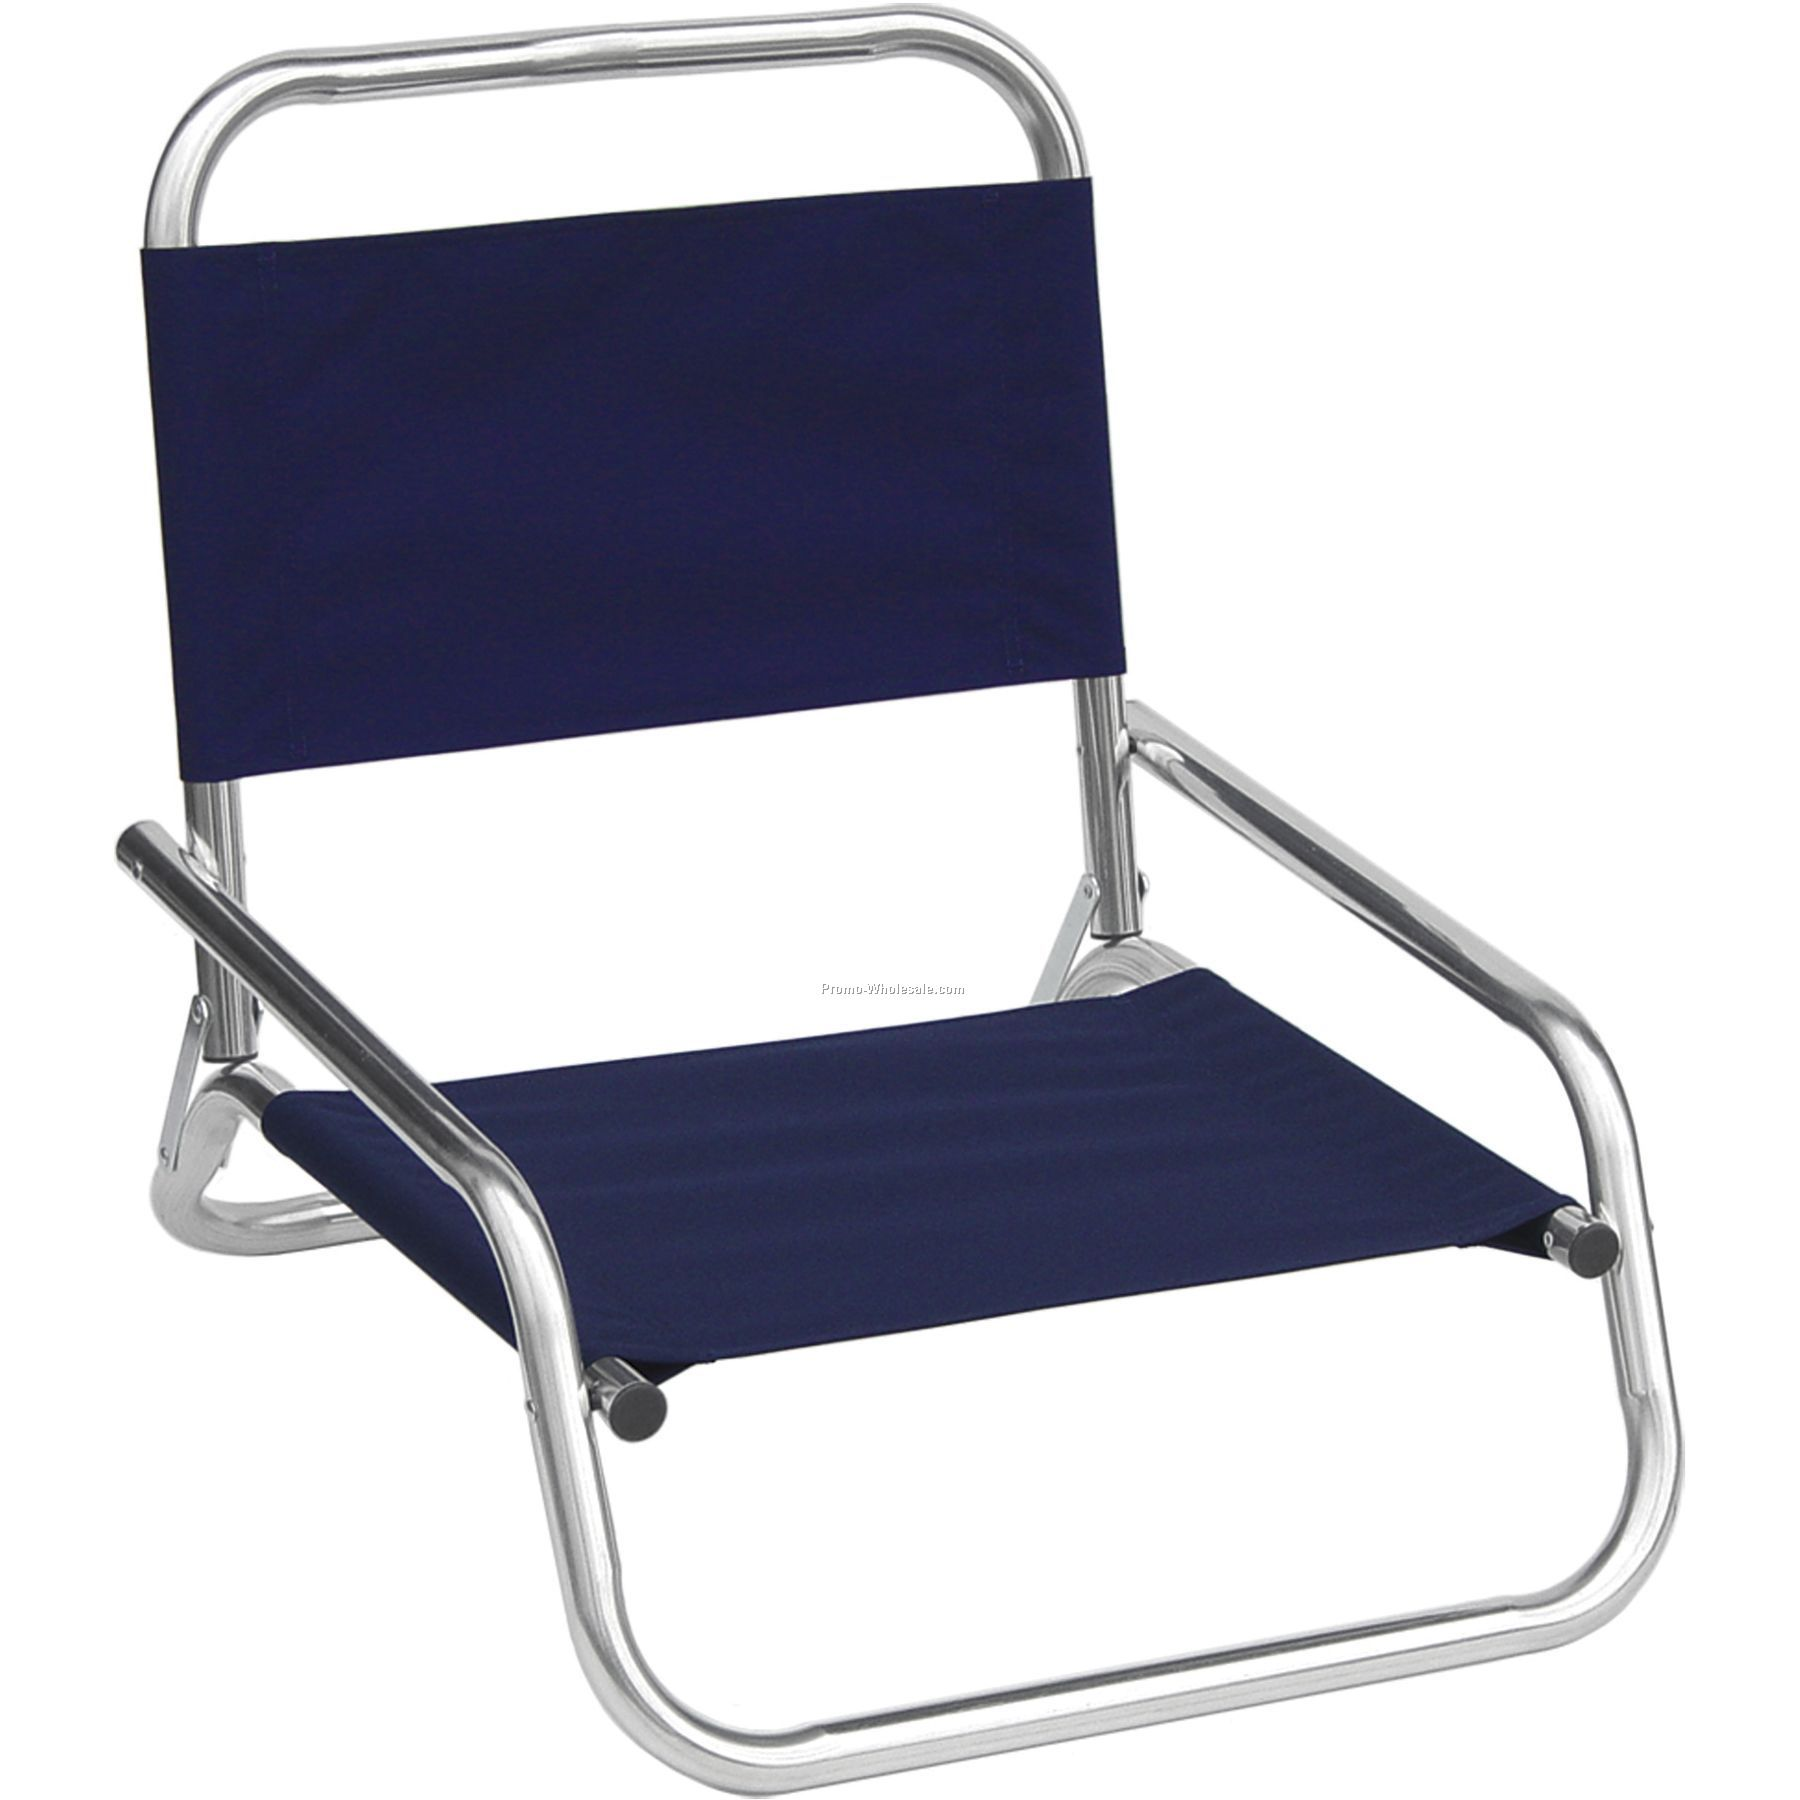 Deluxe Wide Low Back Beach Chair